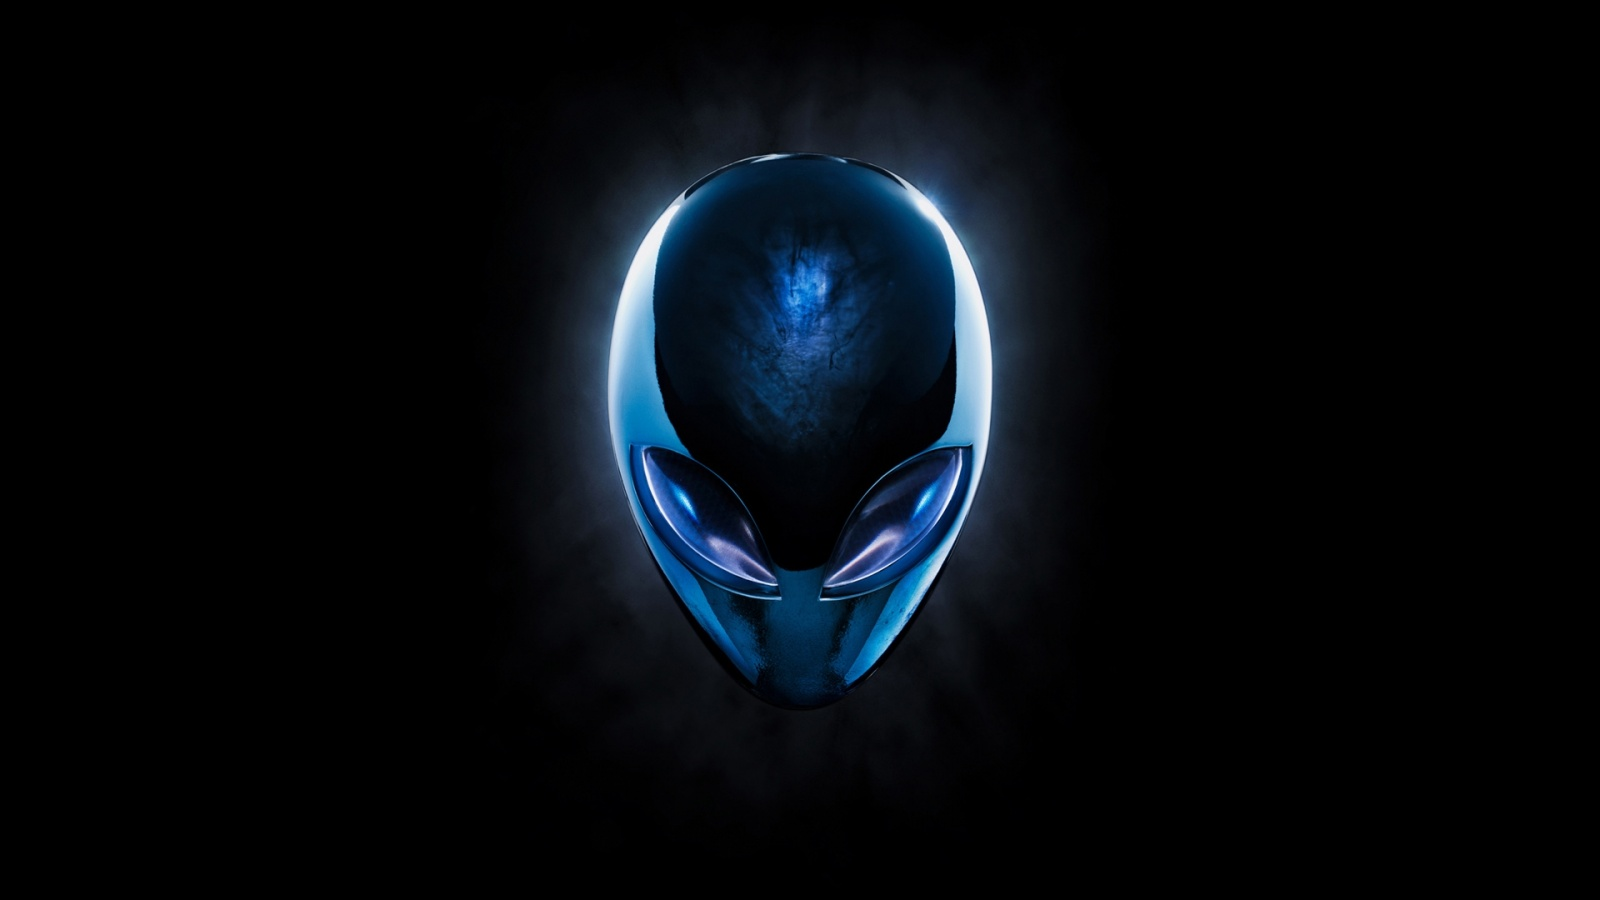 1600 x 900 gaming wallpaper: Alienware Wallpaper 1600 X 900